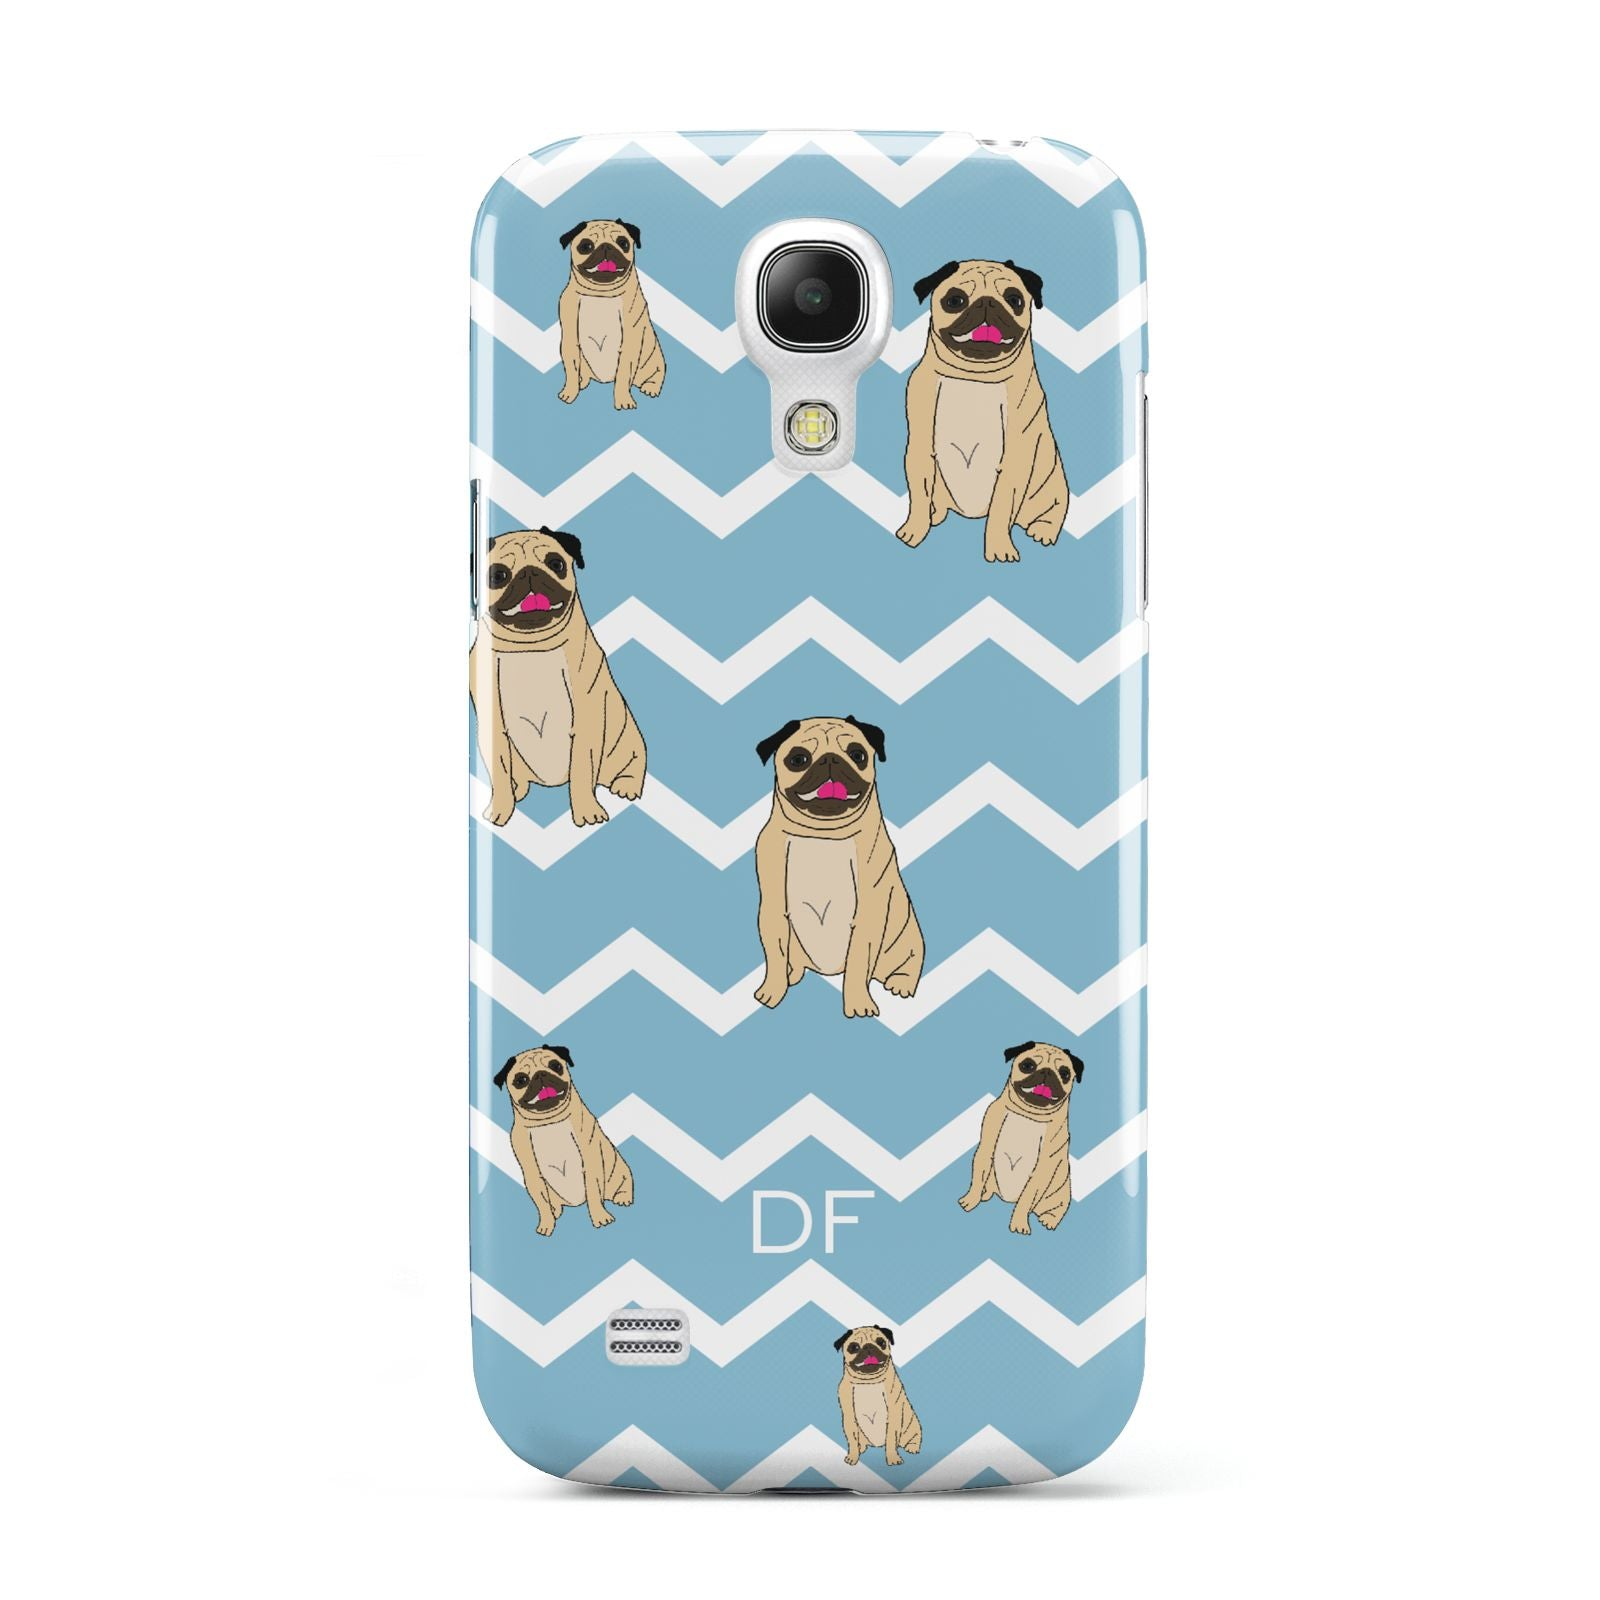 Personalised Pug Initials Samsung Galaxy S4 Mini Case